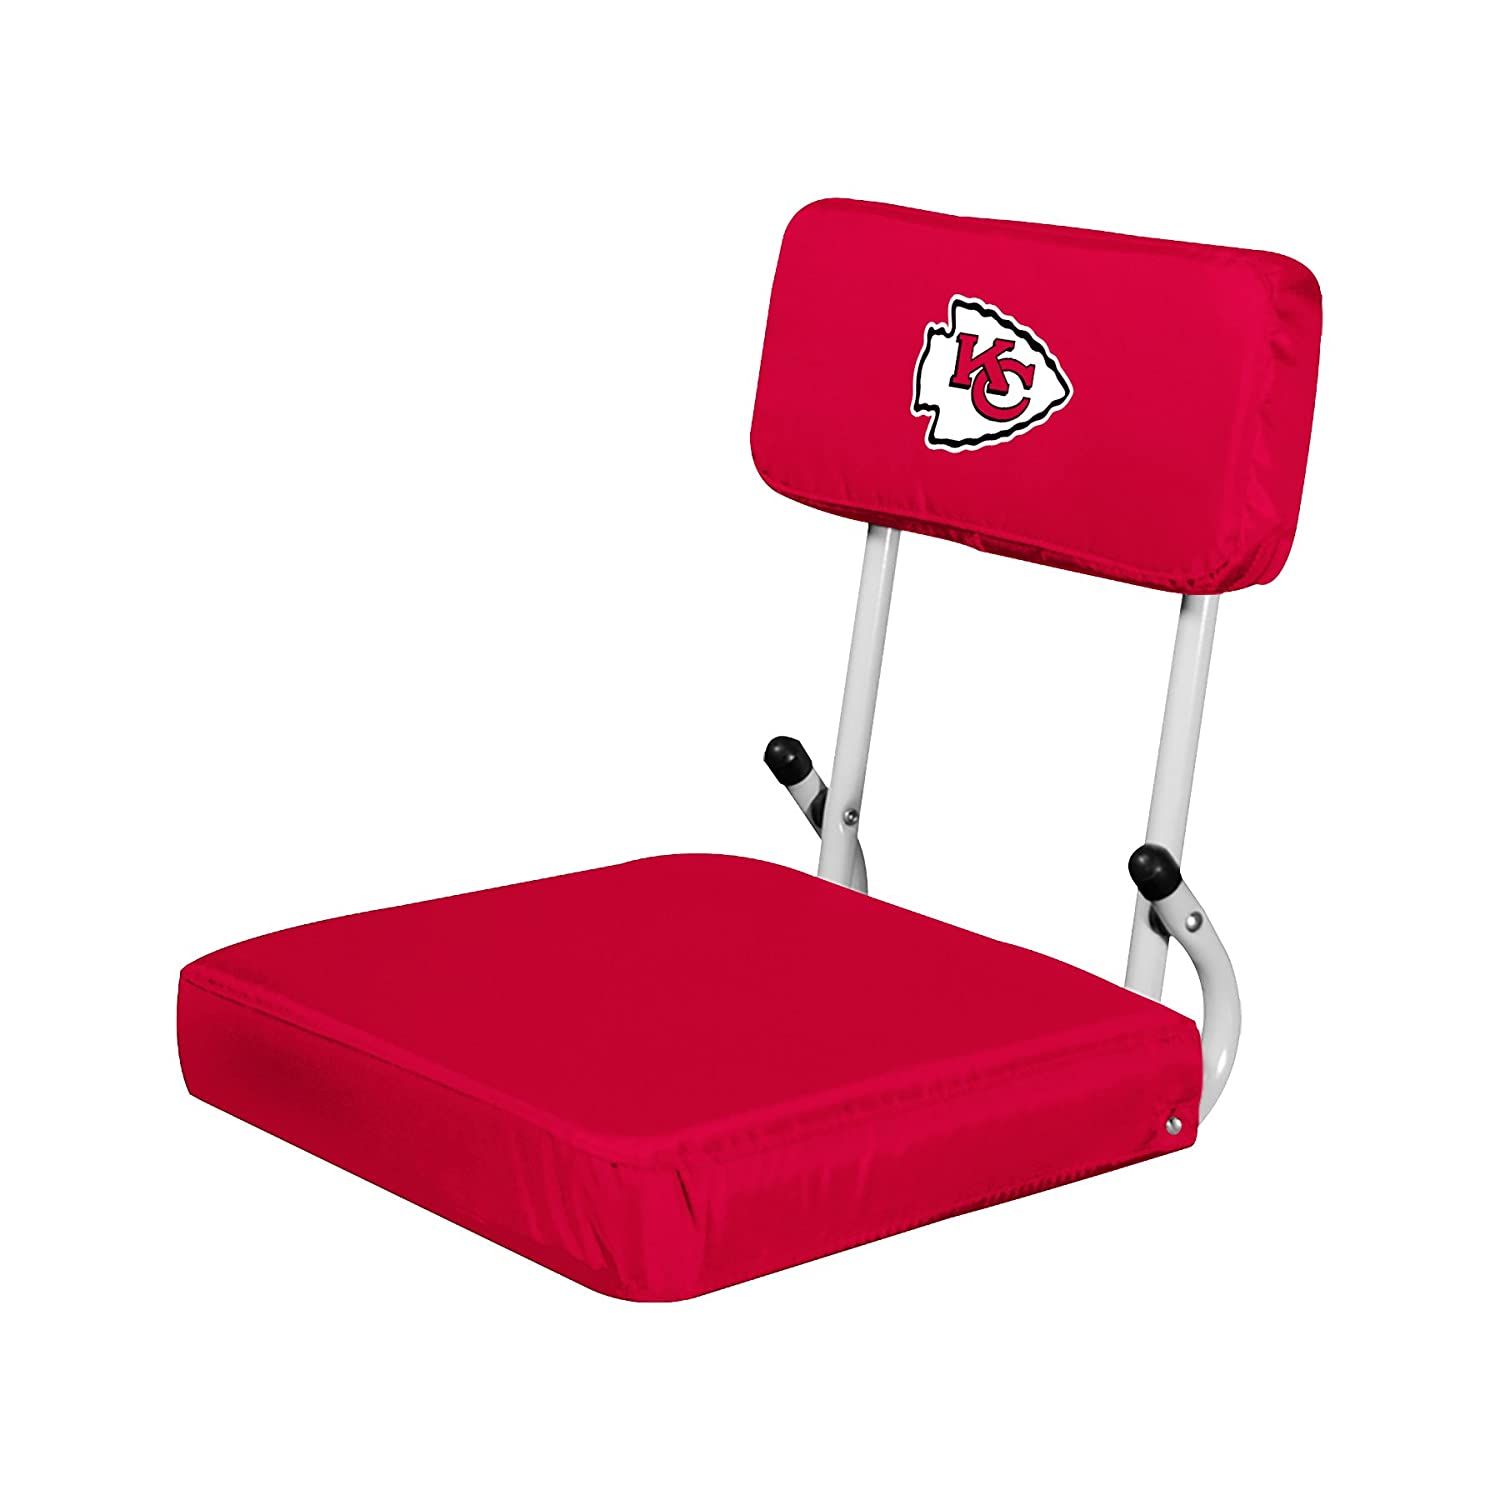 (Kansas City Chiefs, One Size) - NFL Collapsible Hardback Portable Seat with Metal Bleacher Attachment   B06W2H96HL